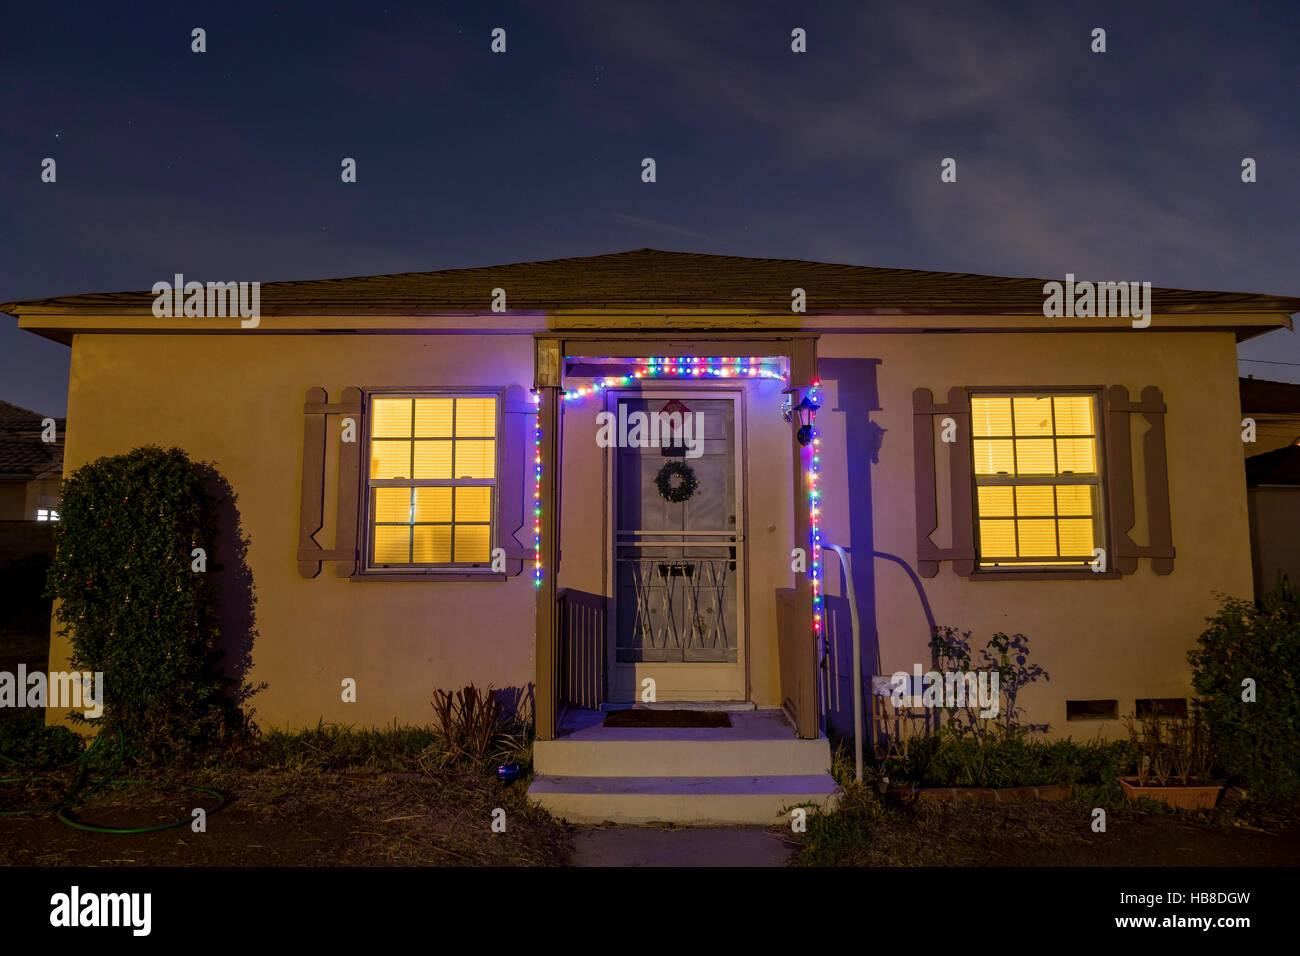 Simple Christmas Decoration Of A Wooden Typical Small American House At Night With Lights